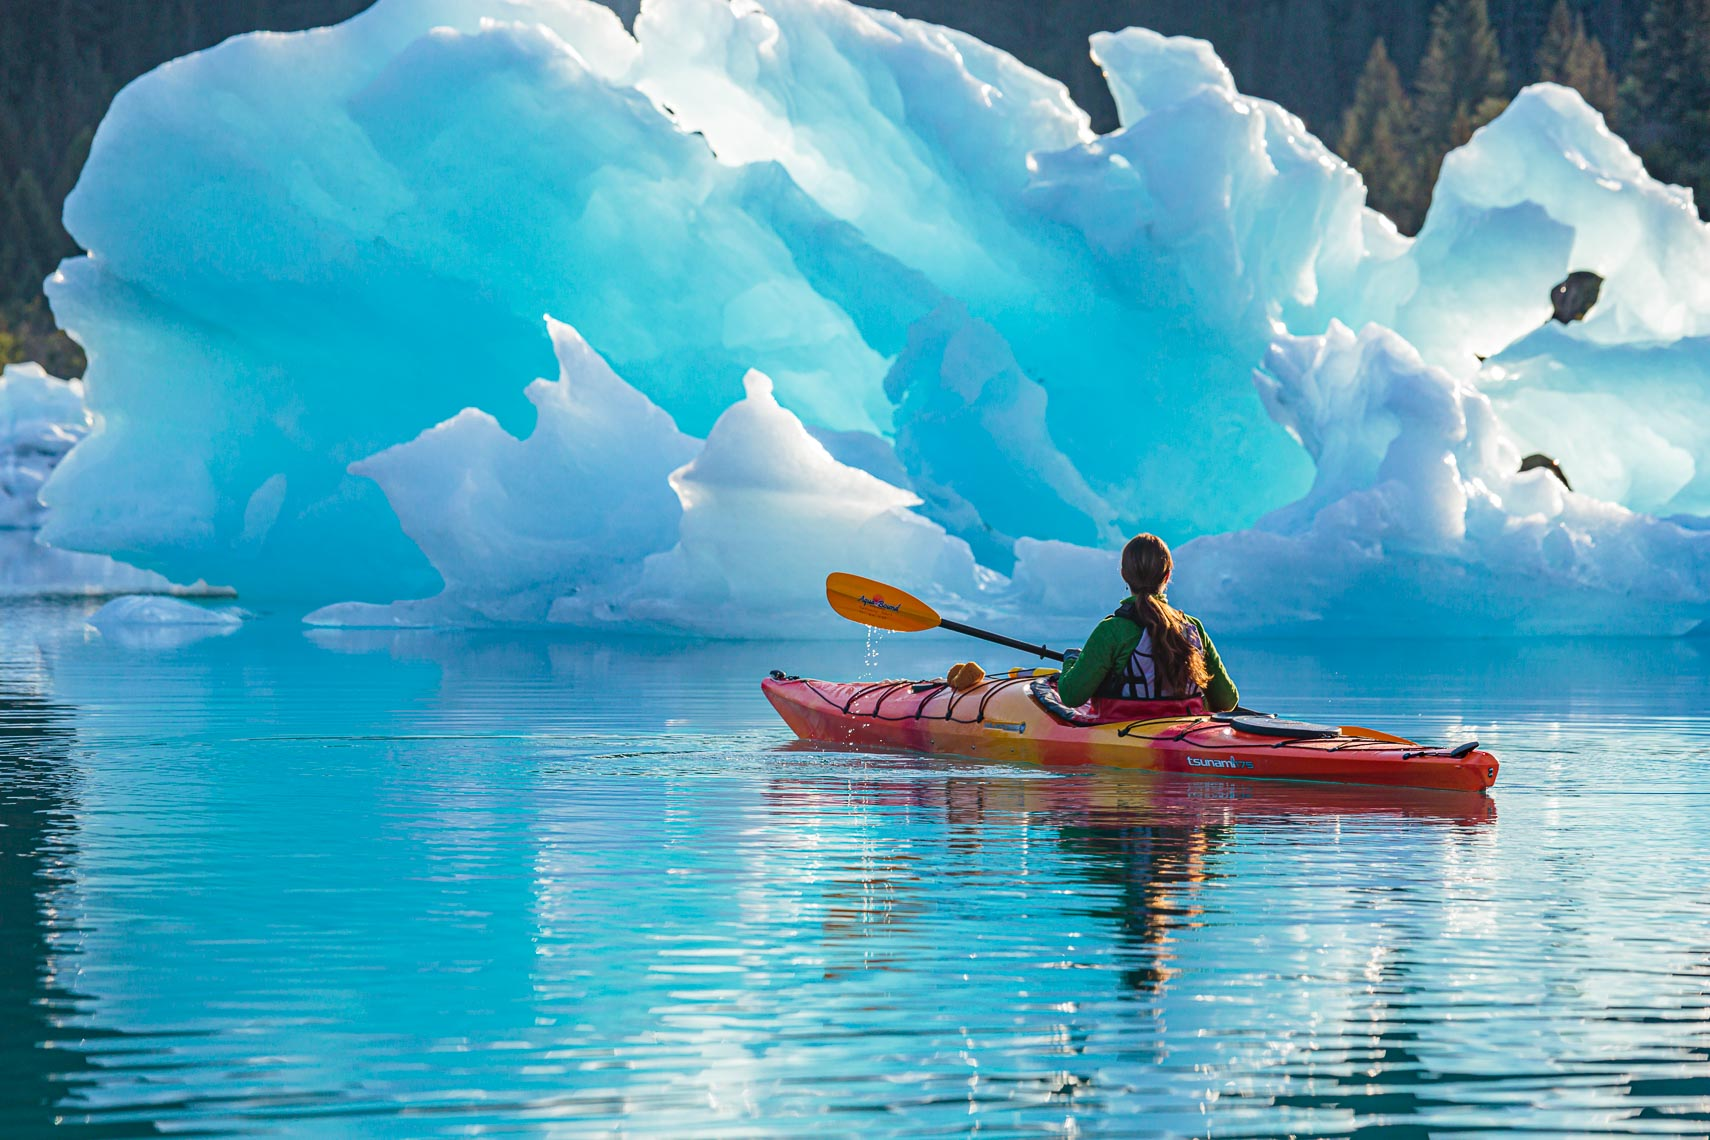 Alaska Kayak Touring by Large Iceberg | Michael DeYoung